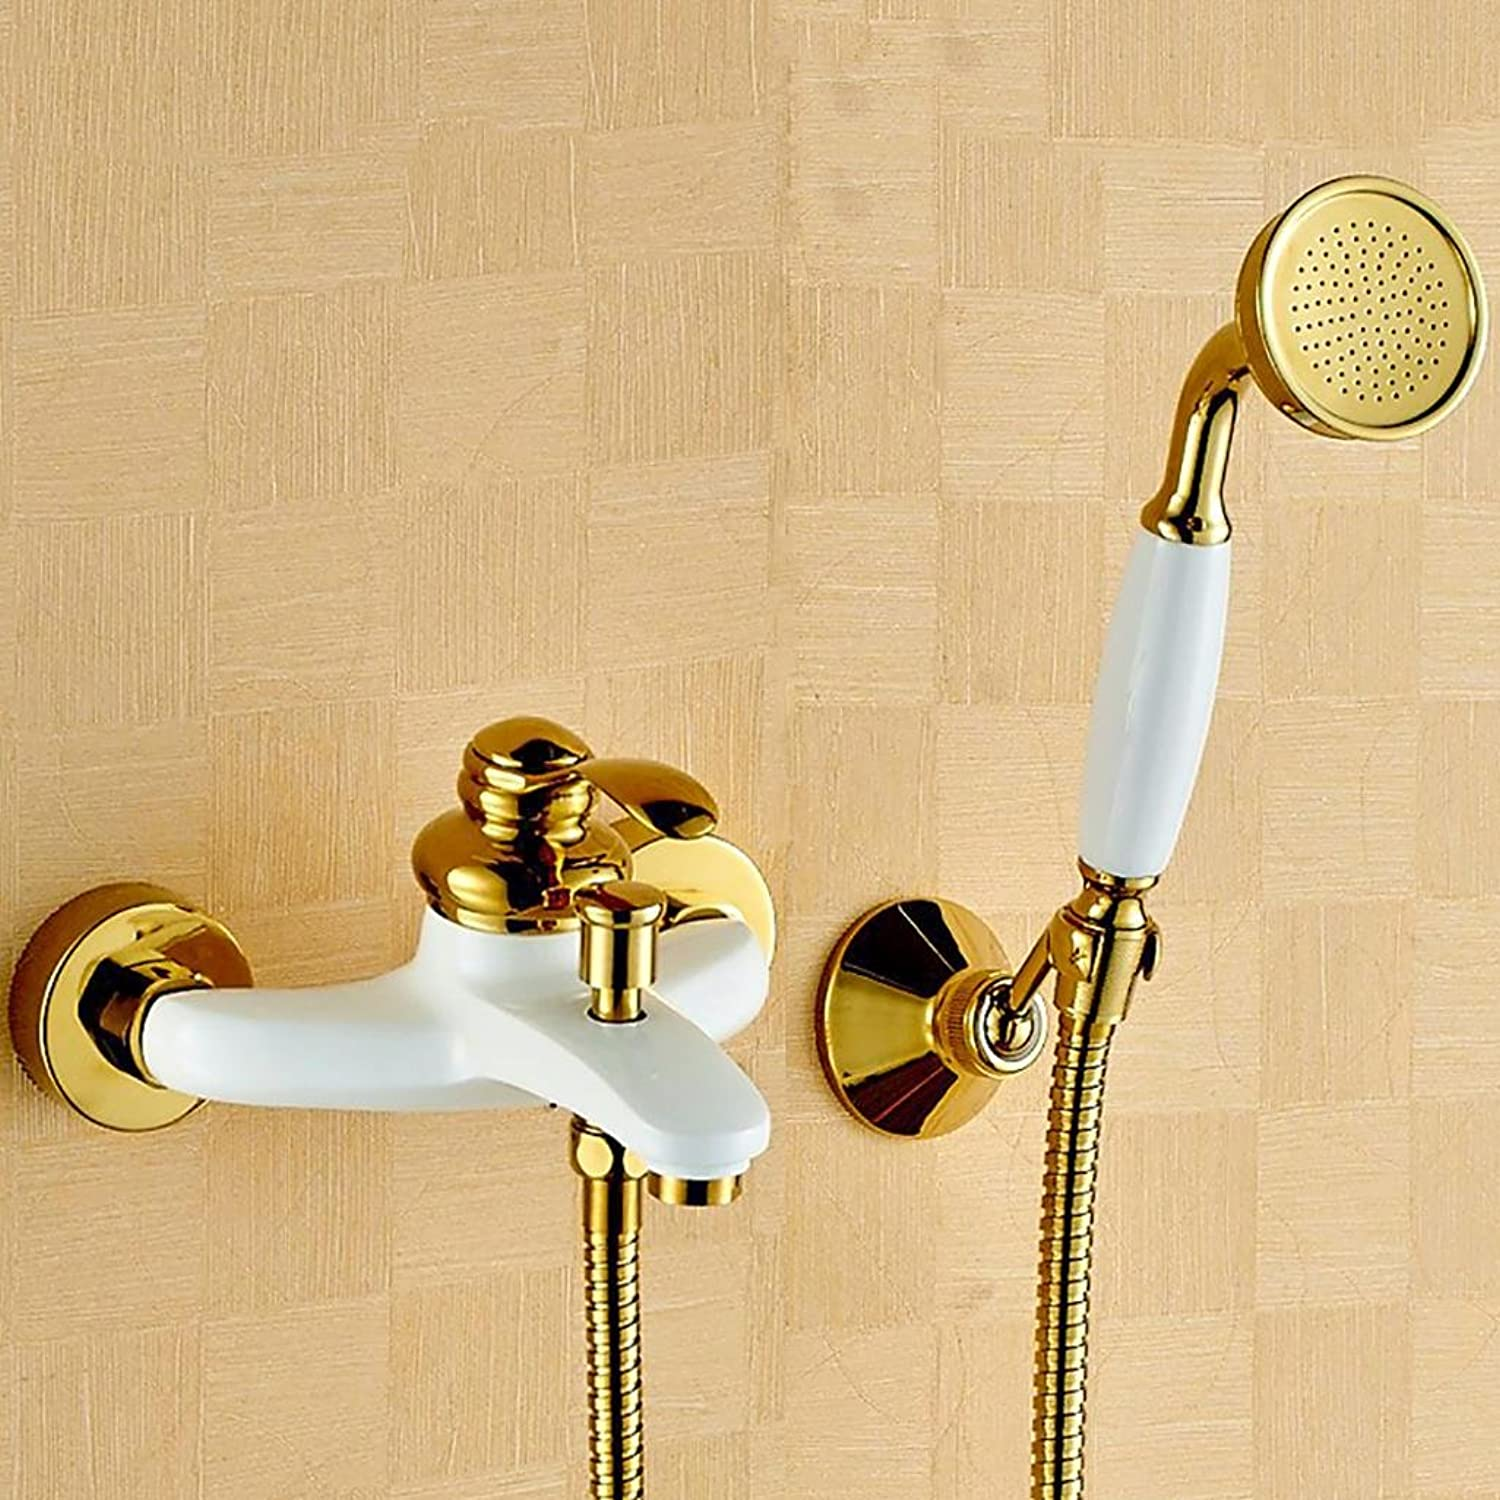 PLYY Retro Tub Shower Handshower Included Ceramic Valve Single Handle Two Holes Brass Bathtub Mixer Taps